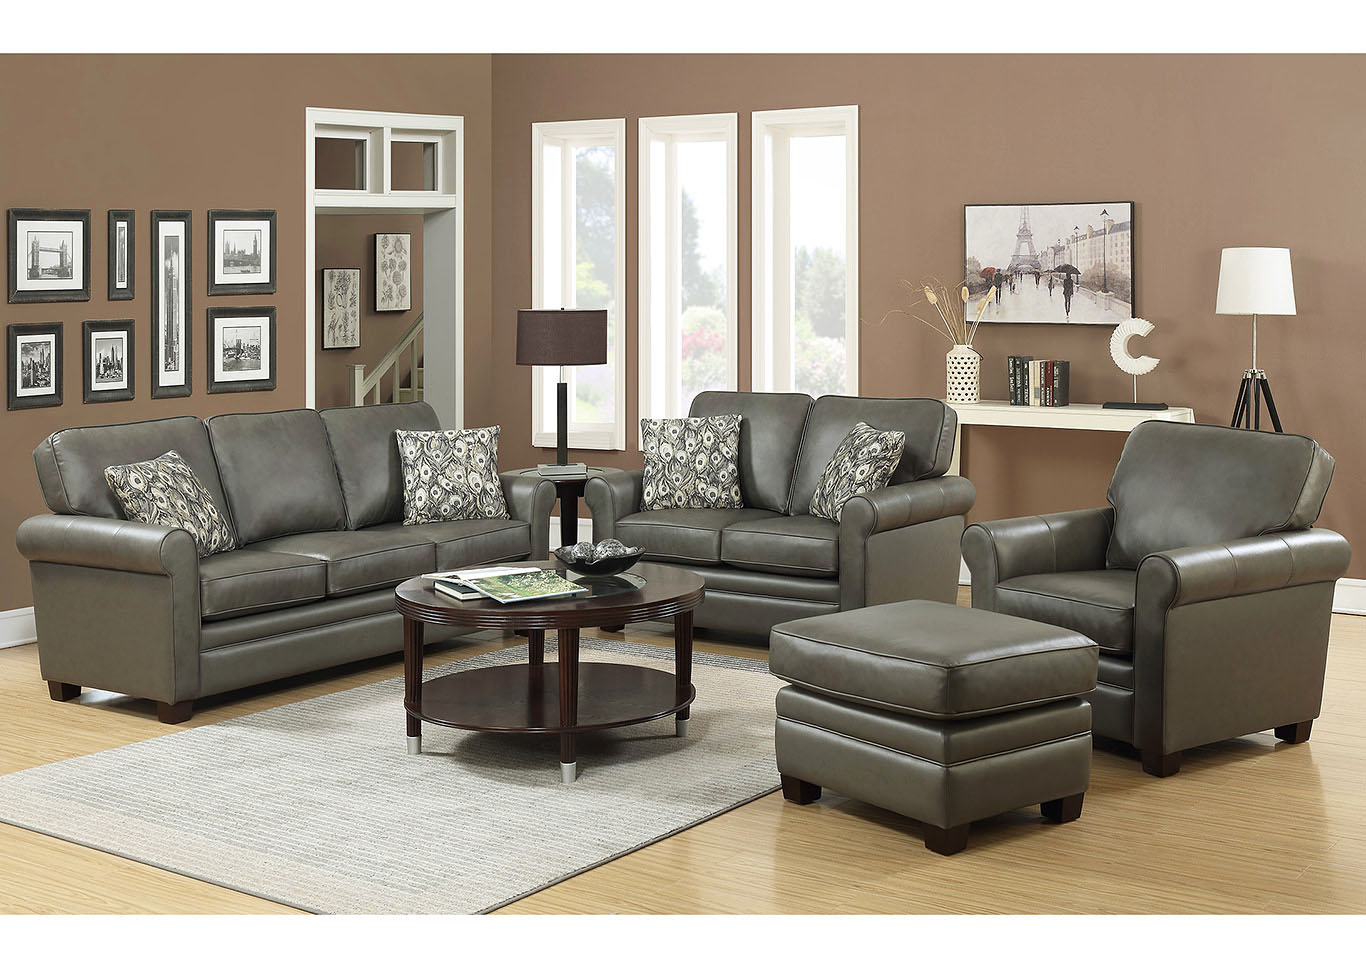 April Gray Leather Match Stationary 4, Gray Living Room Sets